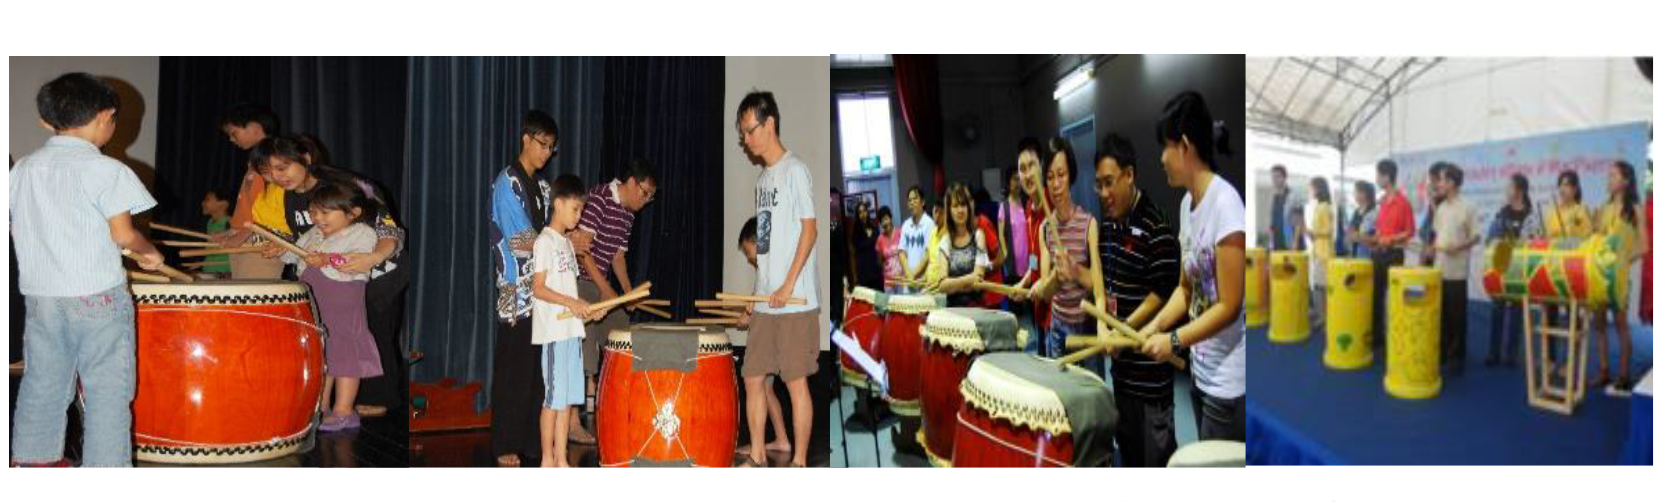 iMap Intro to Taiko Drumming